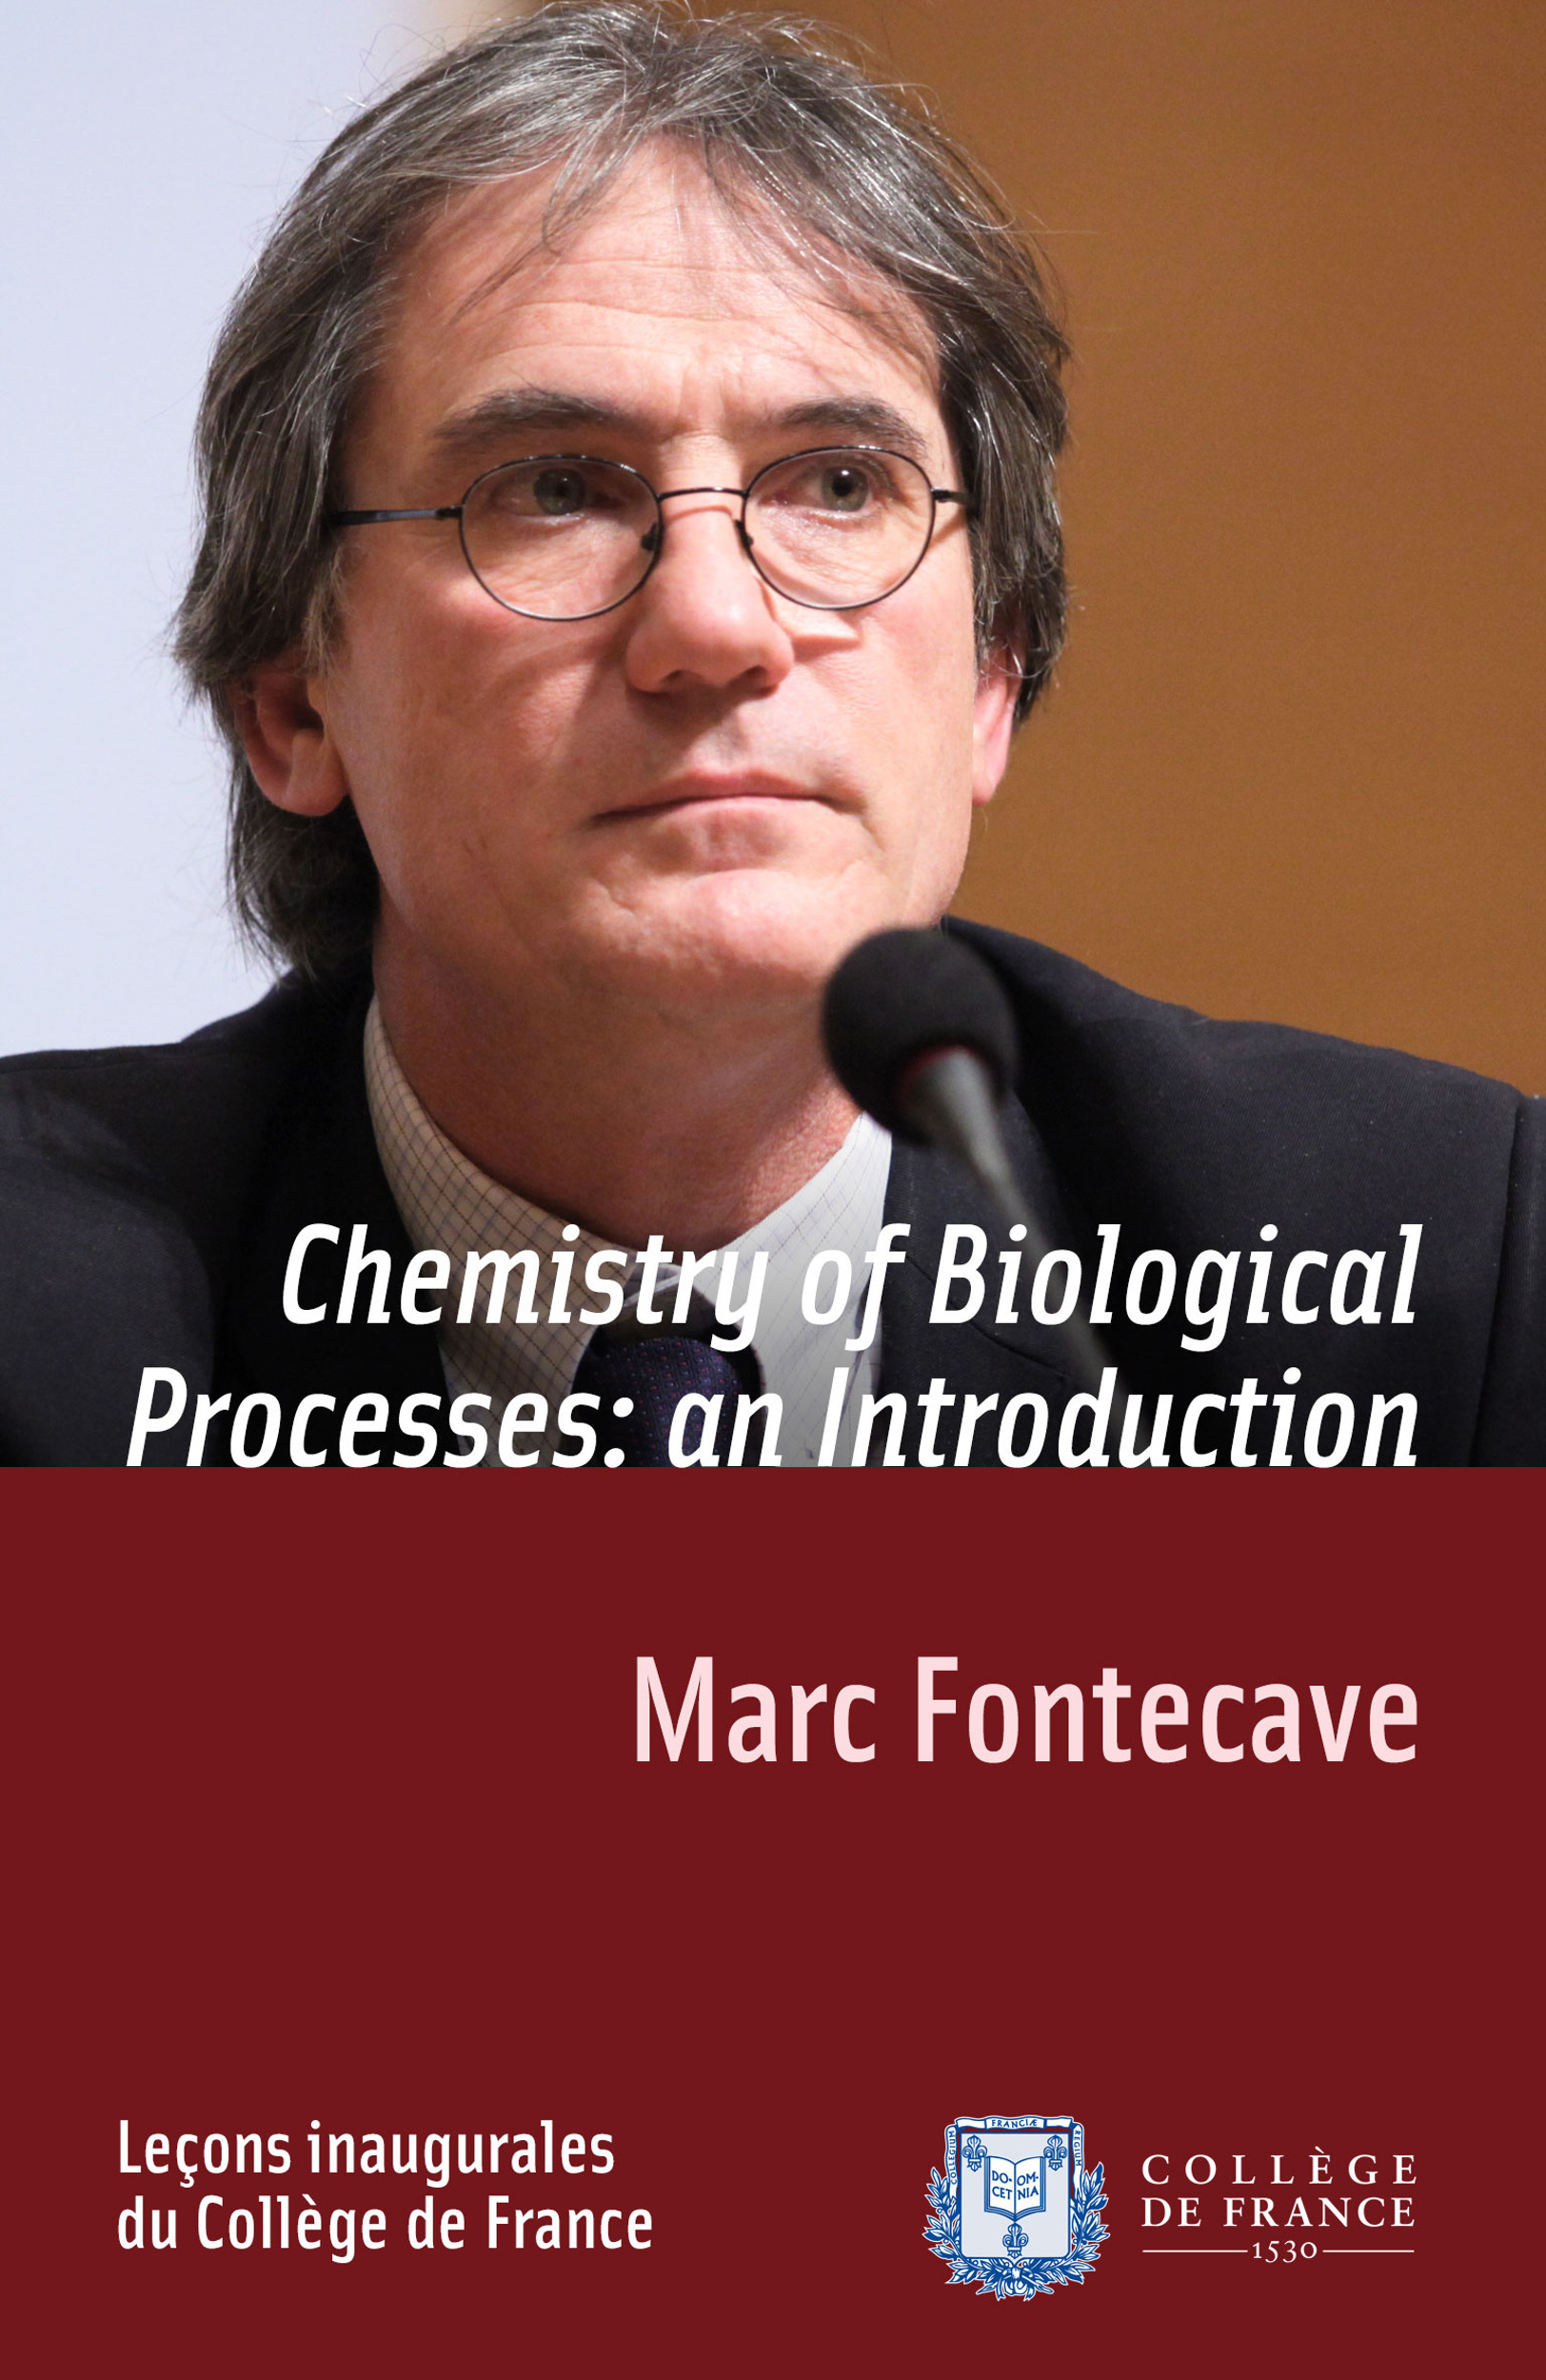 chemistry of biological processes : an introduction